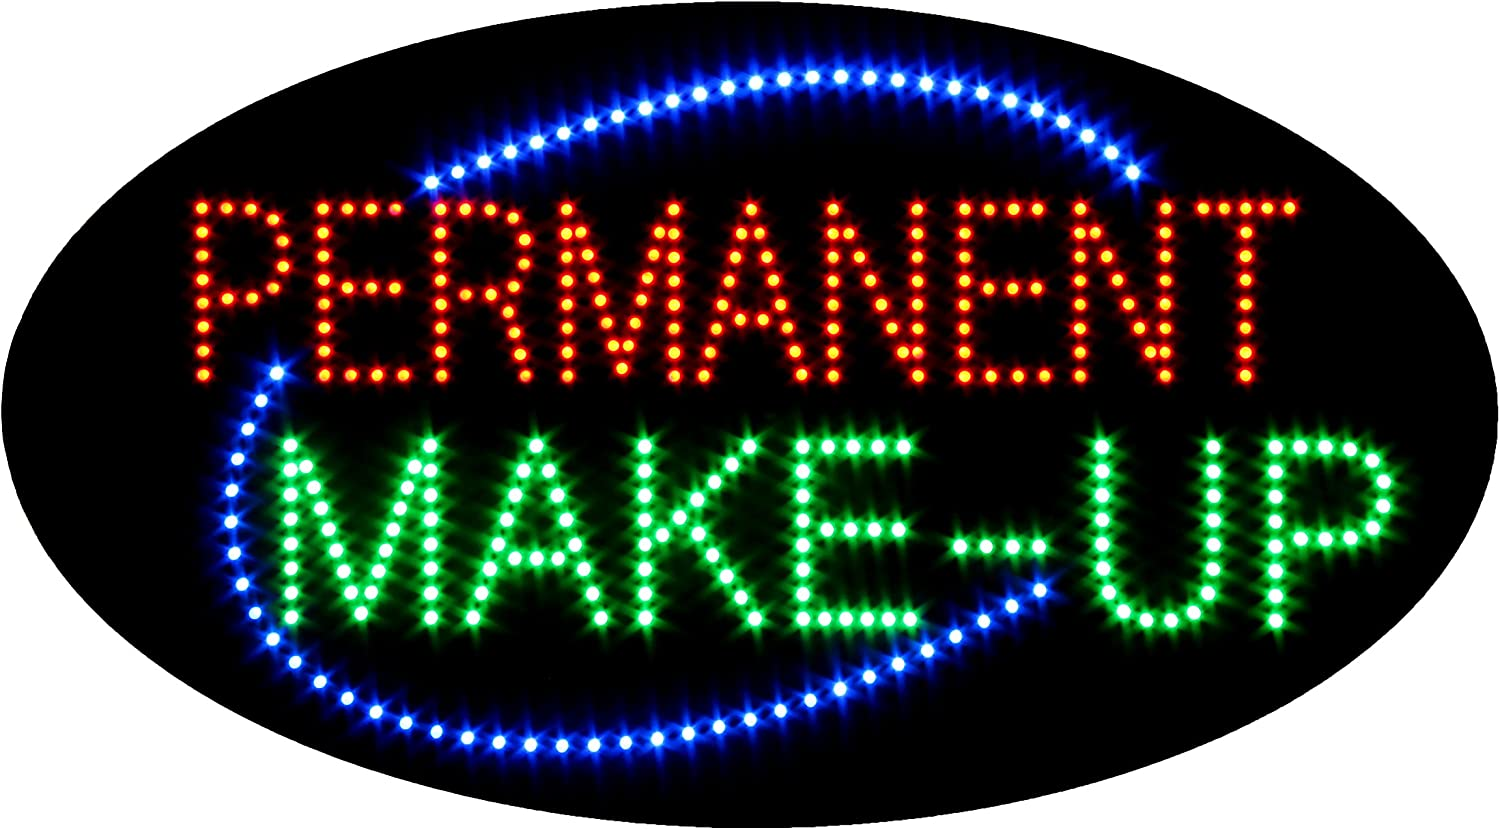 LED Permanent Make Up Cosmetics Open Light Sign Super Bright Advertising Display Board for Beauty Eyebrow Lash Microblading Spa Business Shop Store Window Bedroom Decor (27 x 15 inches)